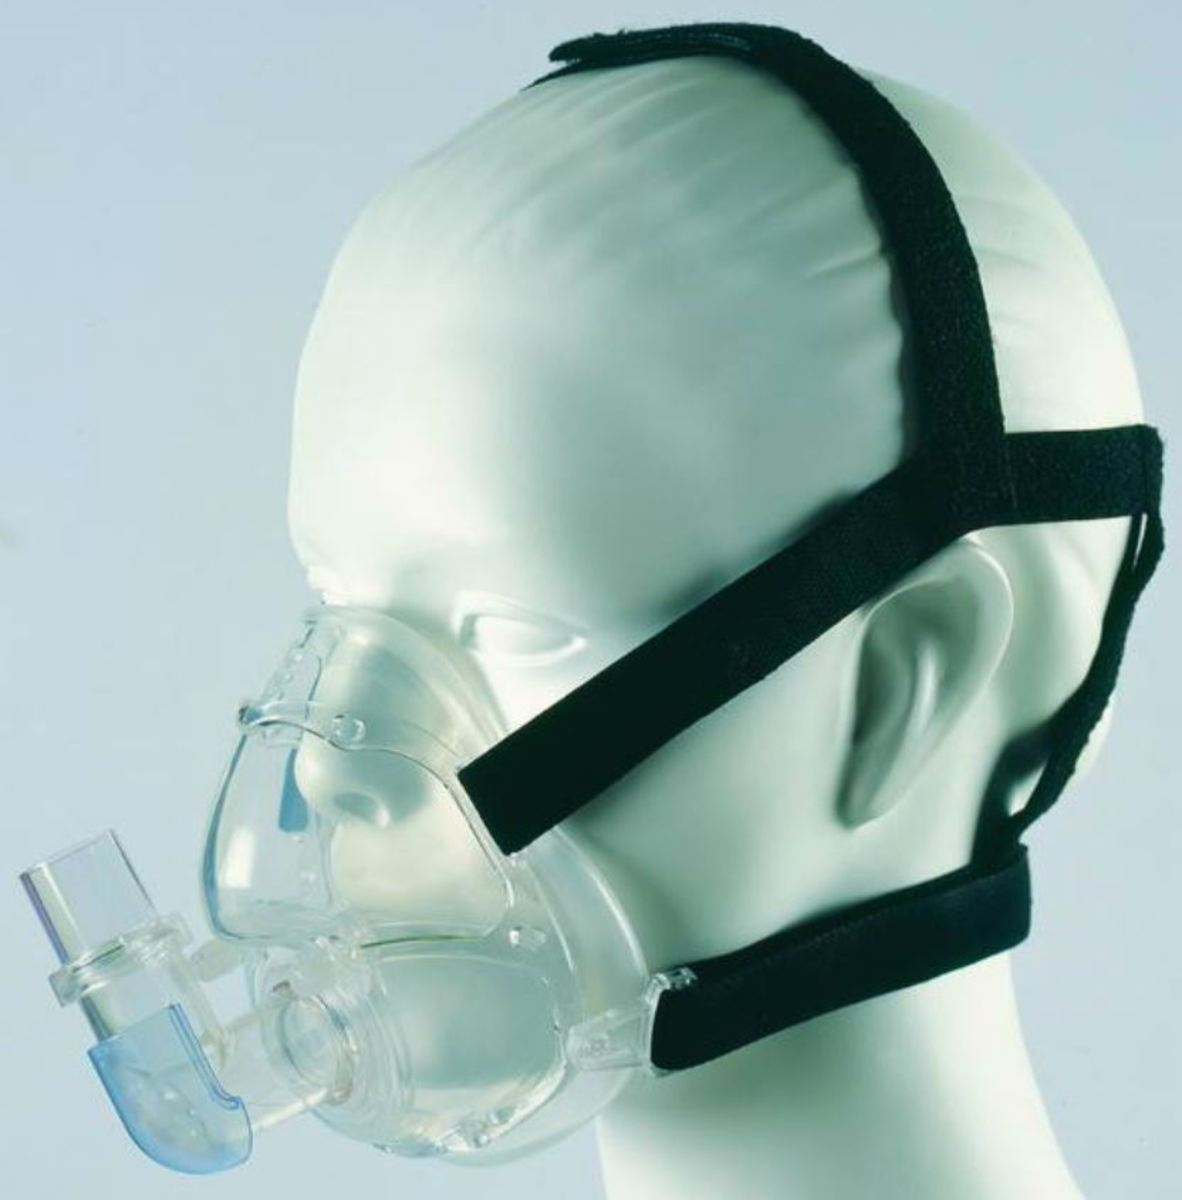 A CPAP mask